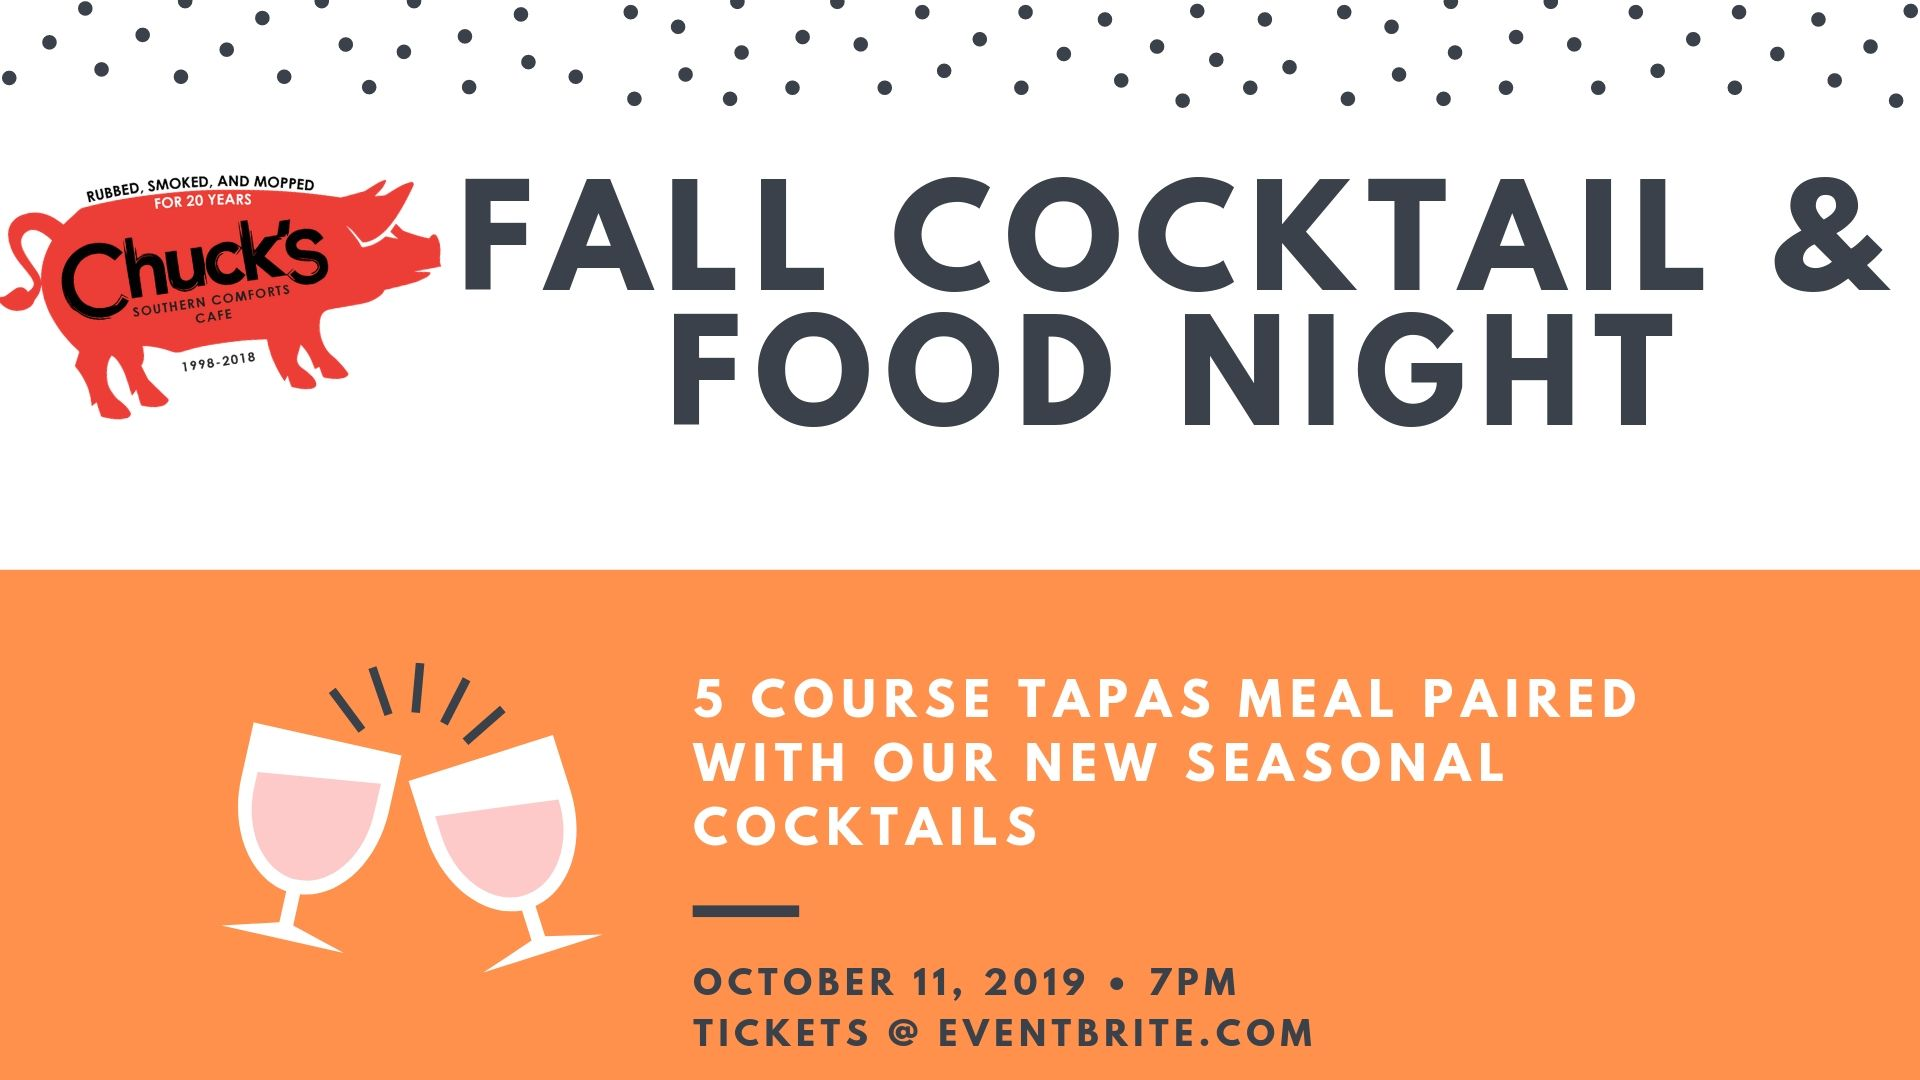 Fall Cocktail & Food Night